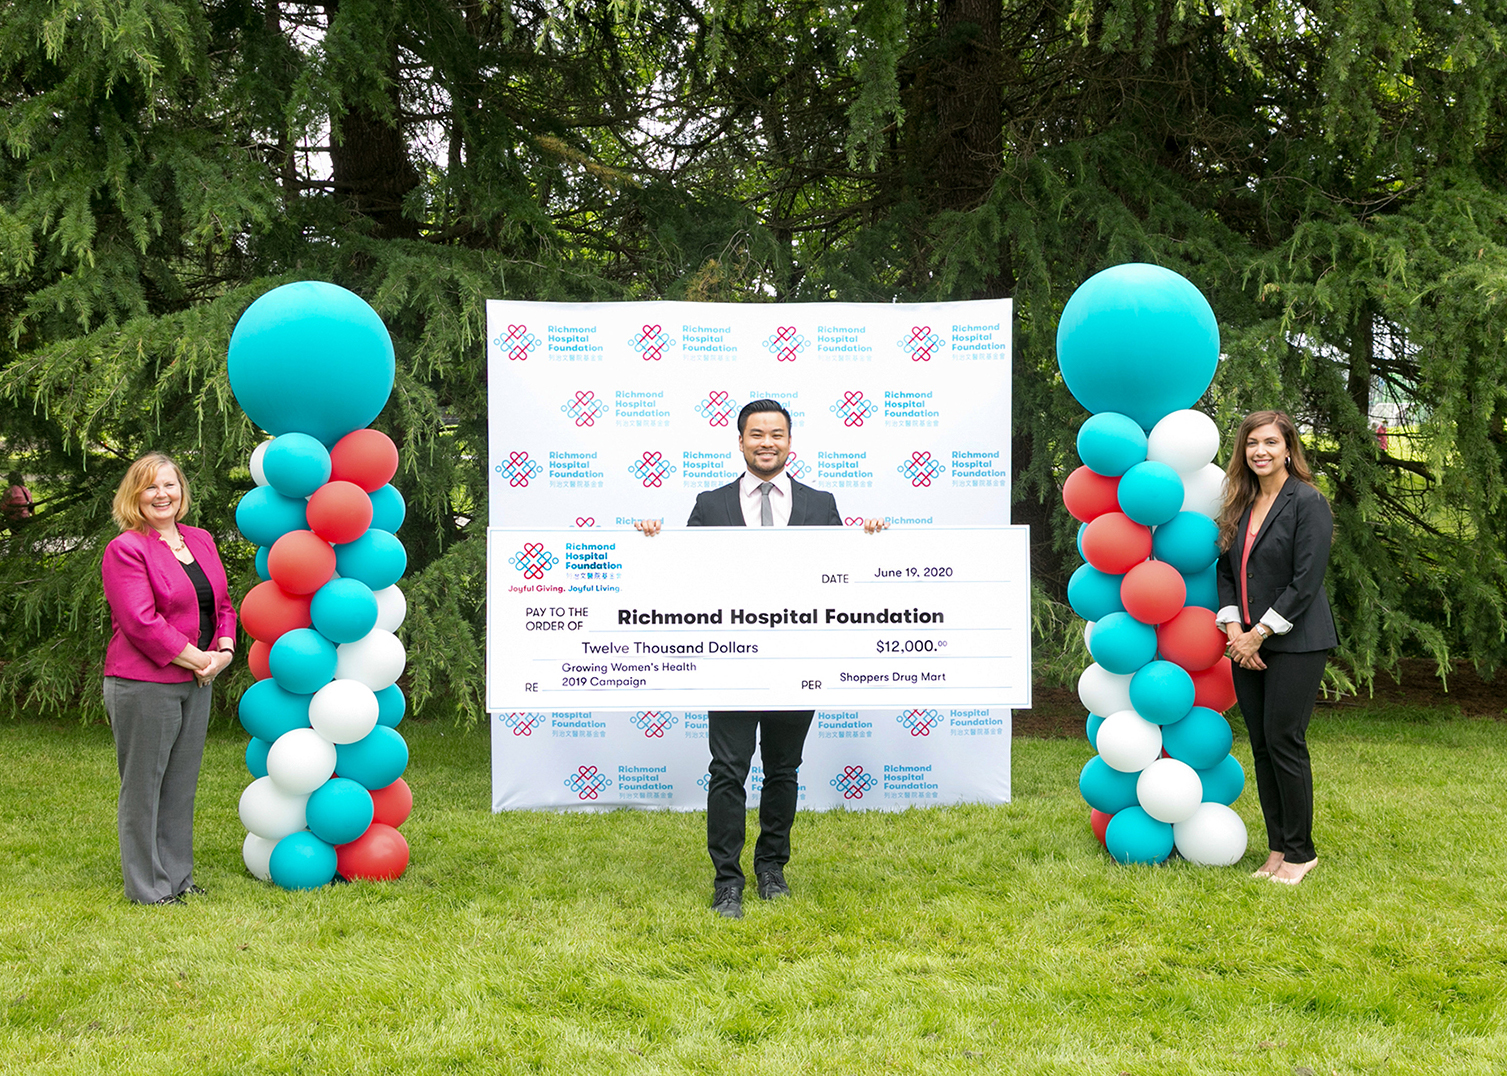 "Shoppers Drug Mart ""Growing Women's Health"" Campaign Raises $12,000 for Richmond Hospital Foundation"